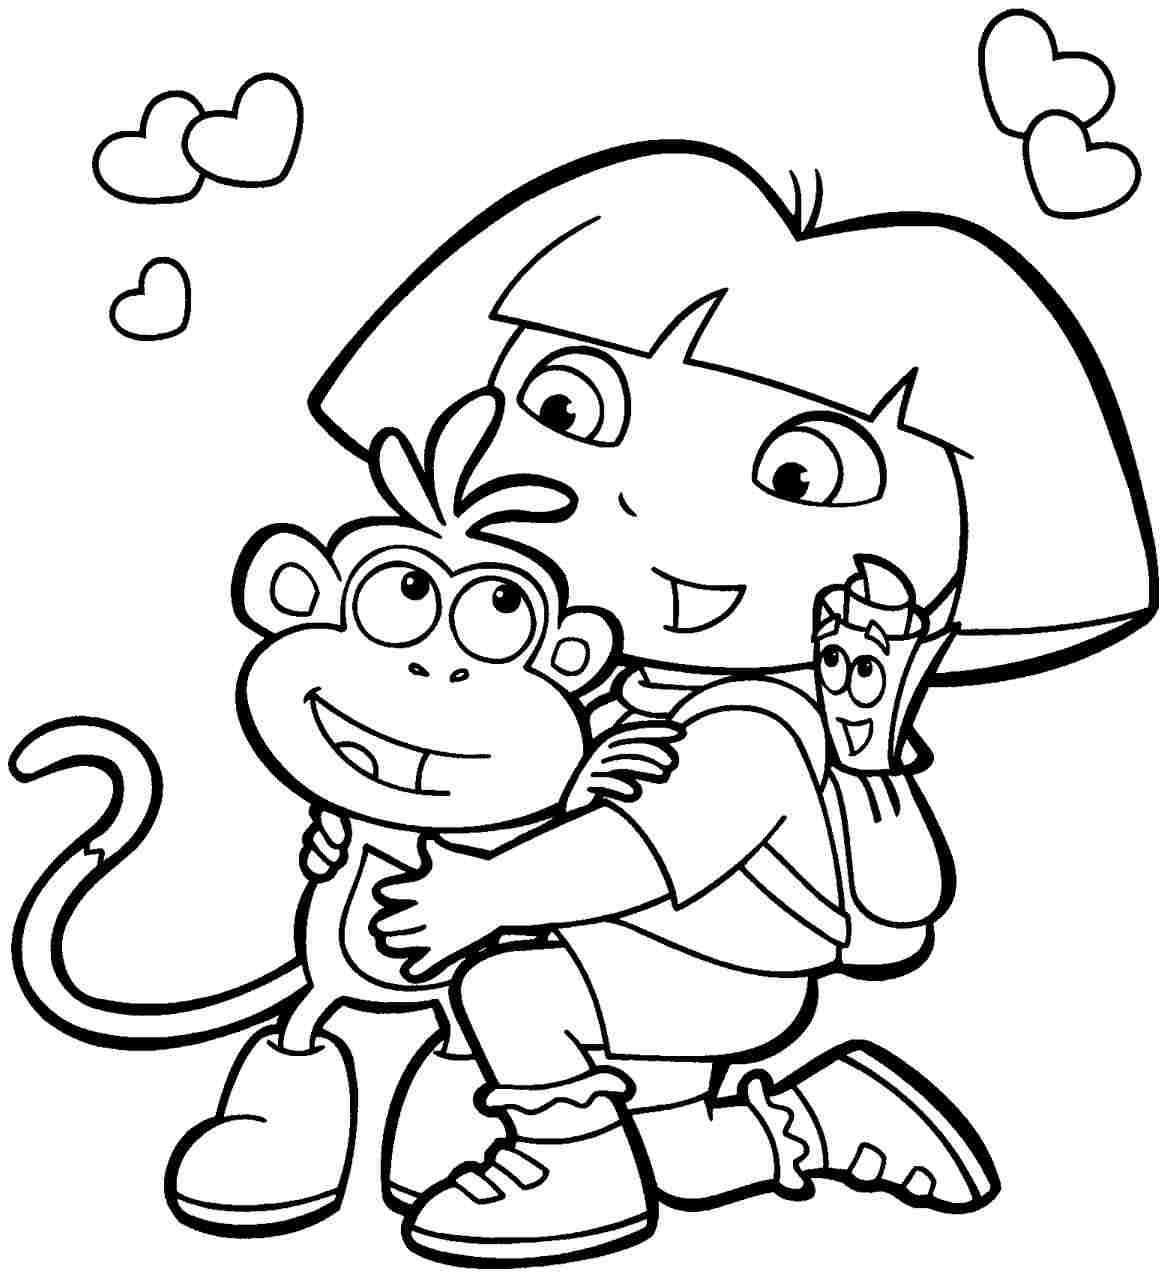 Printable Cartoon Characters Coloring Pages Cartoon Coloring